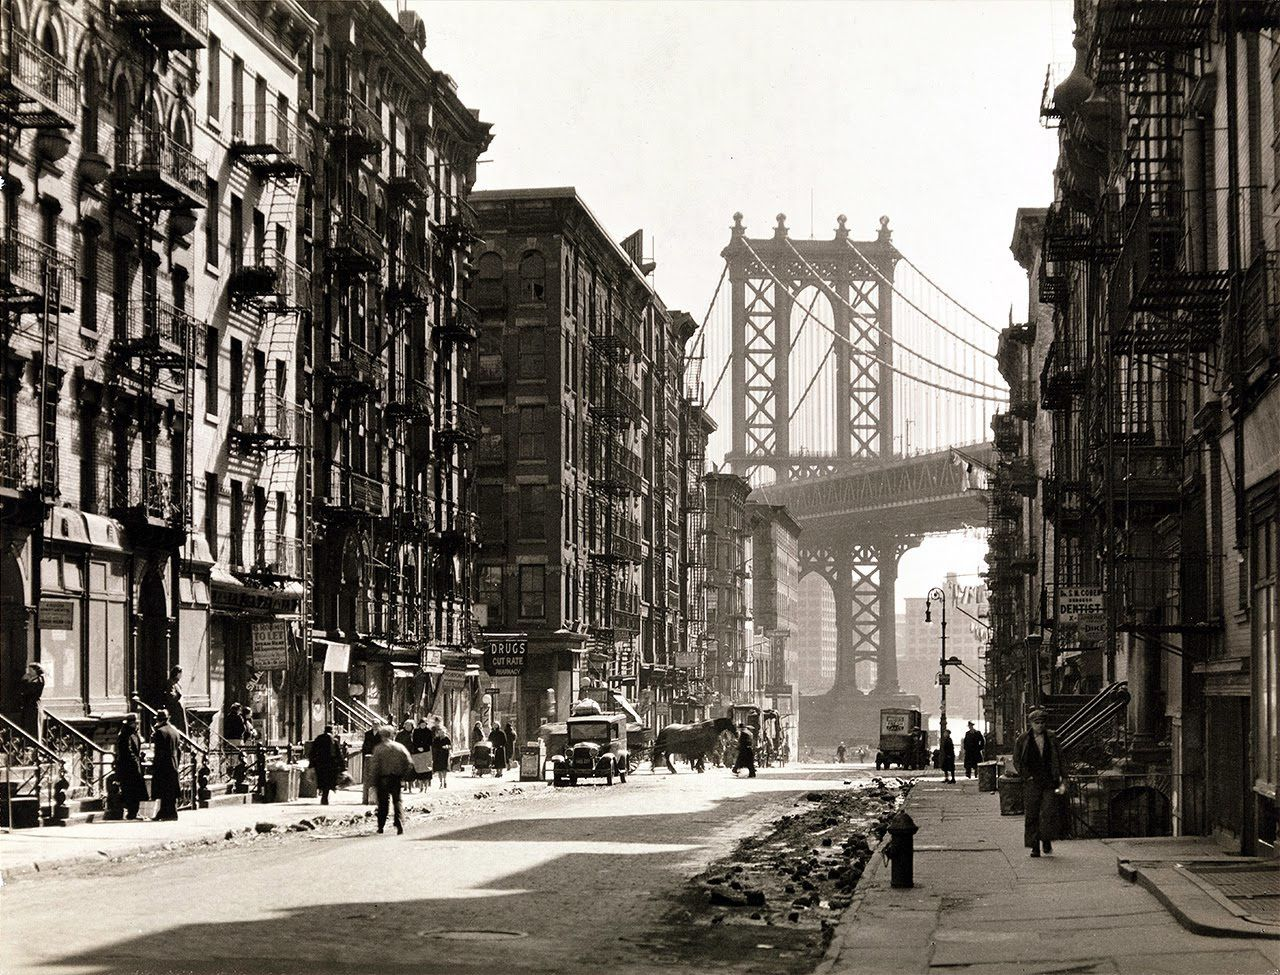 """""""Pike and Henry streets, New York"""", 1936 de Berenice Abbott - Courtesy Les douches La Galerie"""